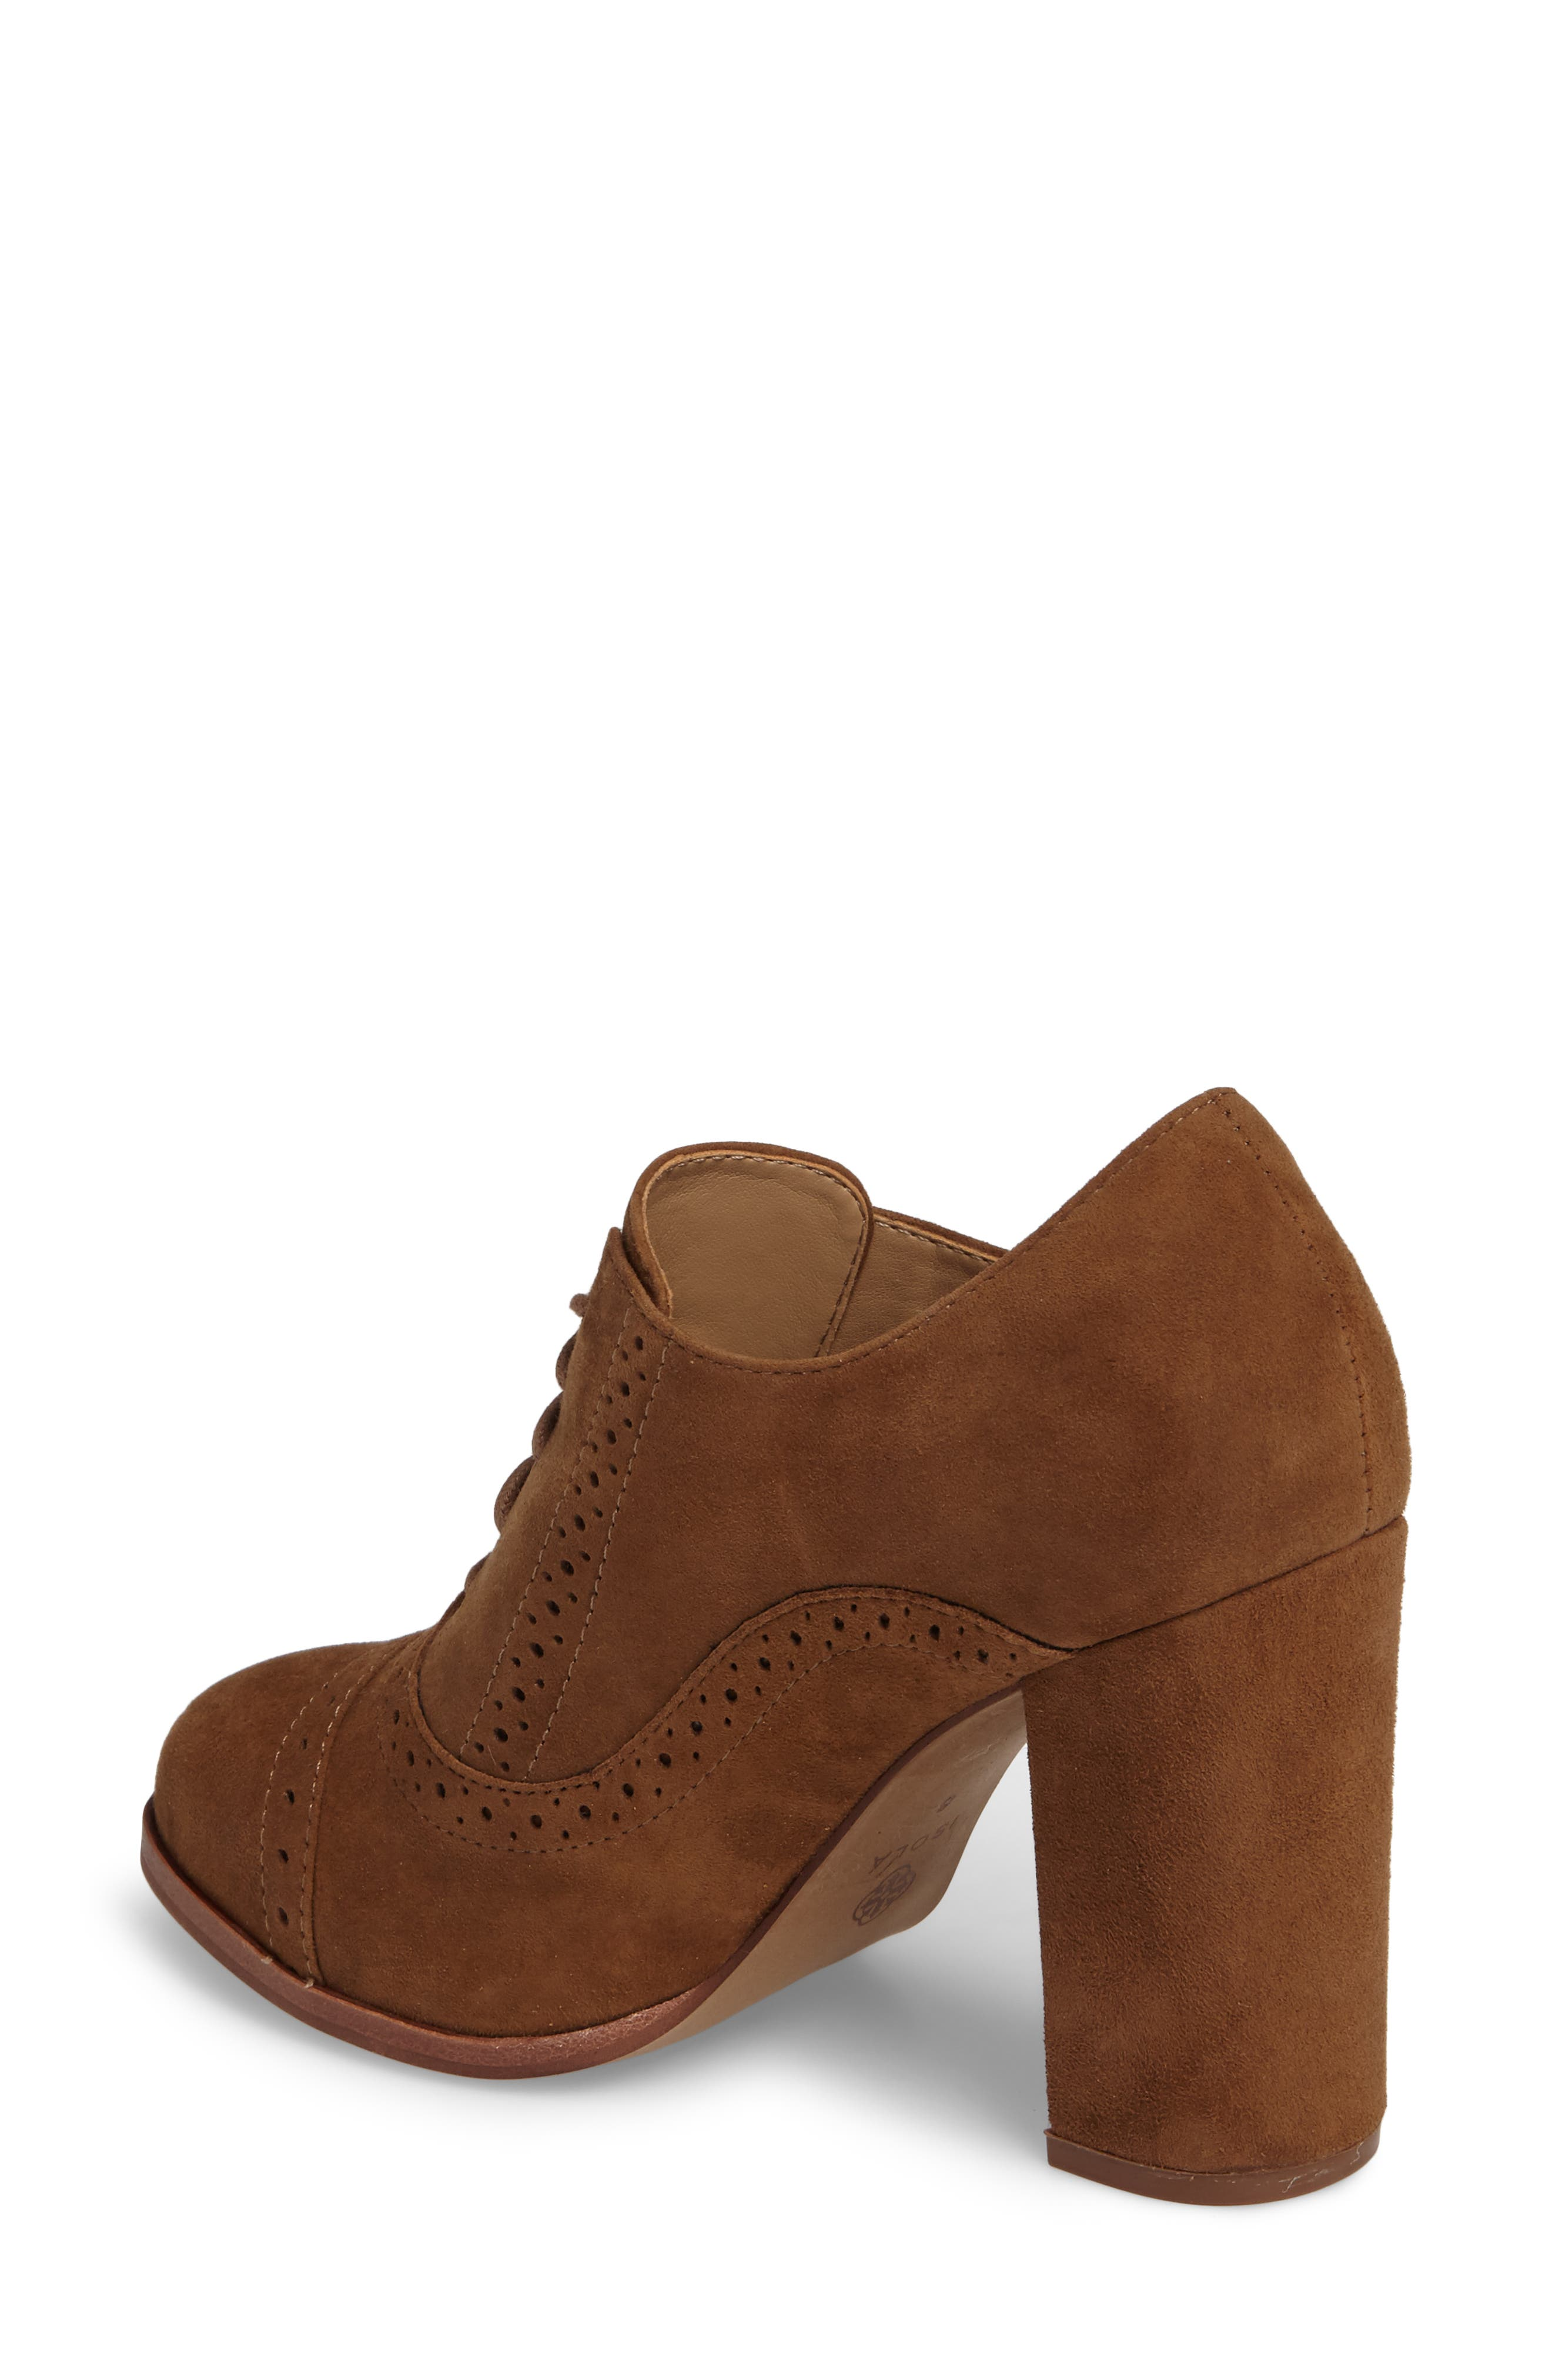 ISOLÁ, Holli Oxford Pump, Alternate thumbnail 2, color, LIGHT BROWN SUEDE